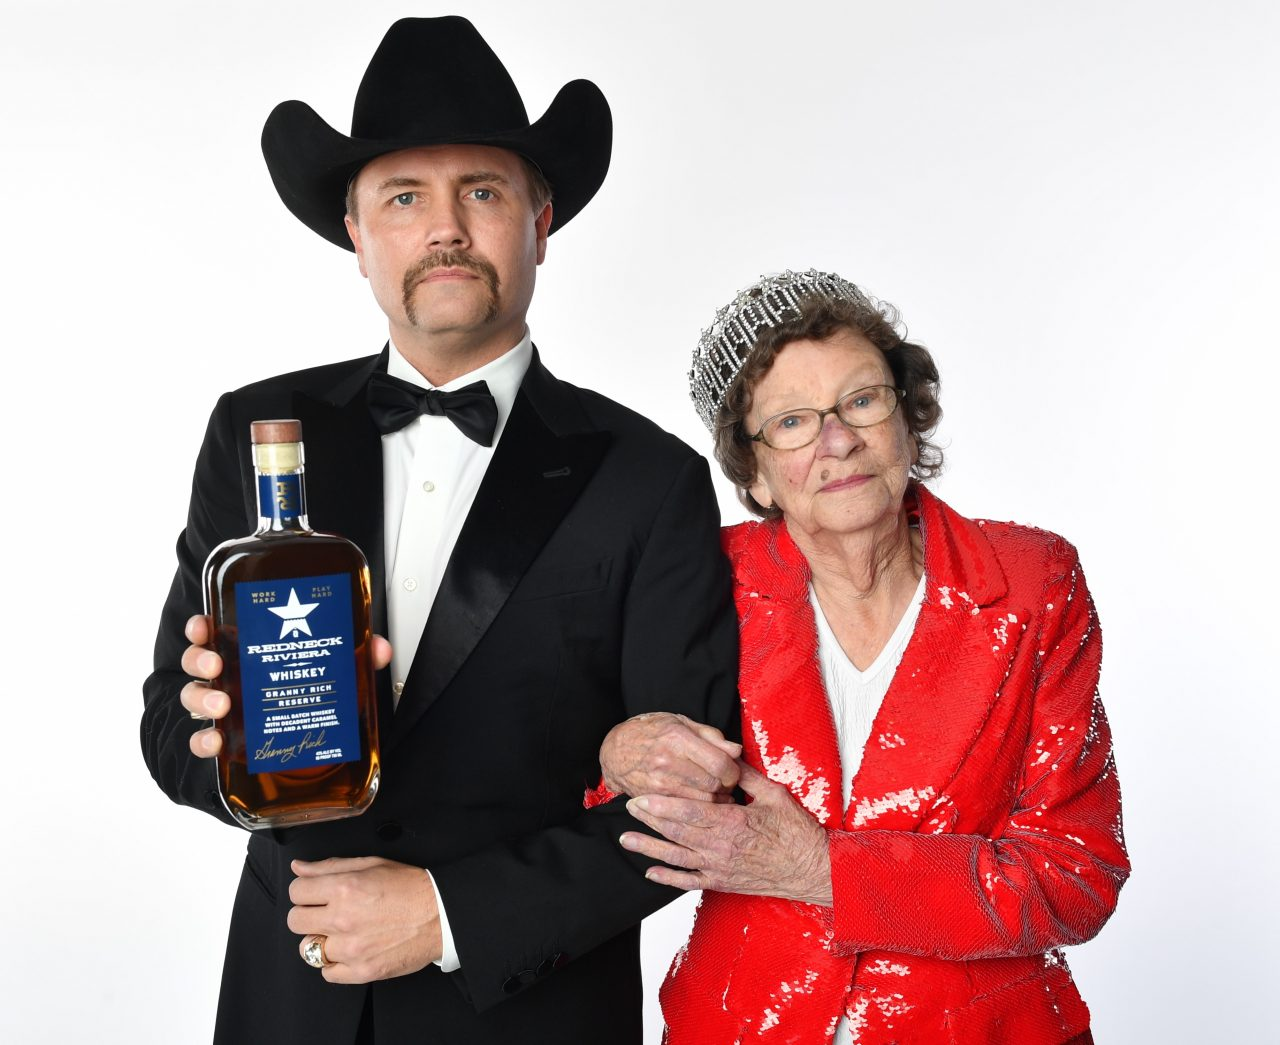 John Rich and His Granny Have Spirited CMA Fest Signing